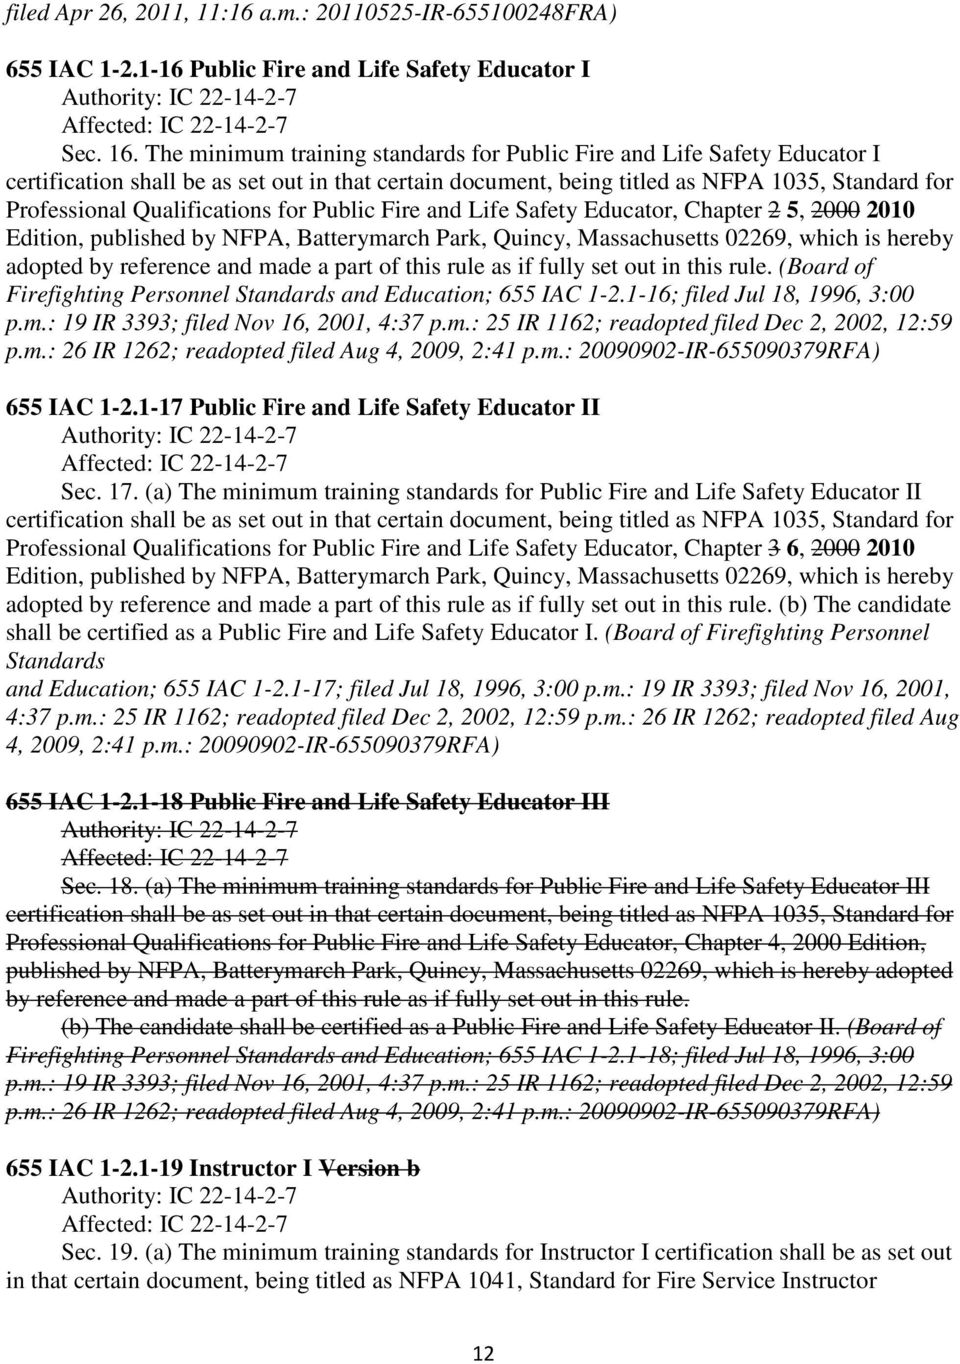 Qualifications for Public Fire and Life Safety Educator, Chapter 2 5, 2000 2010 Edition, published by NFPA, Batterymarch Park, Quincy, Massachusetts 02269, which is hereby adopted by reference and